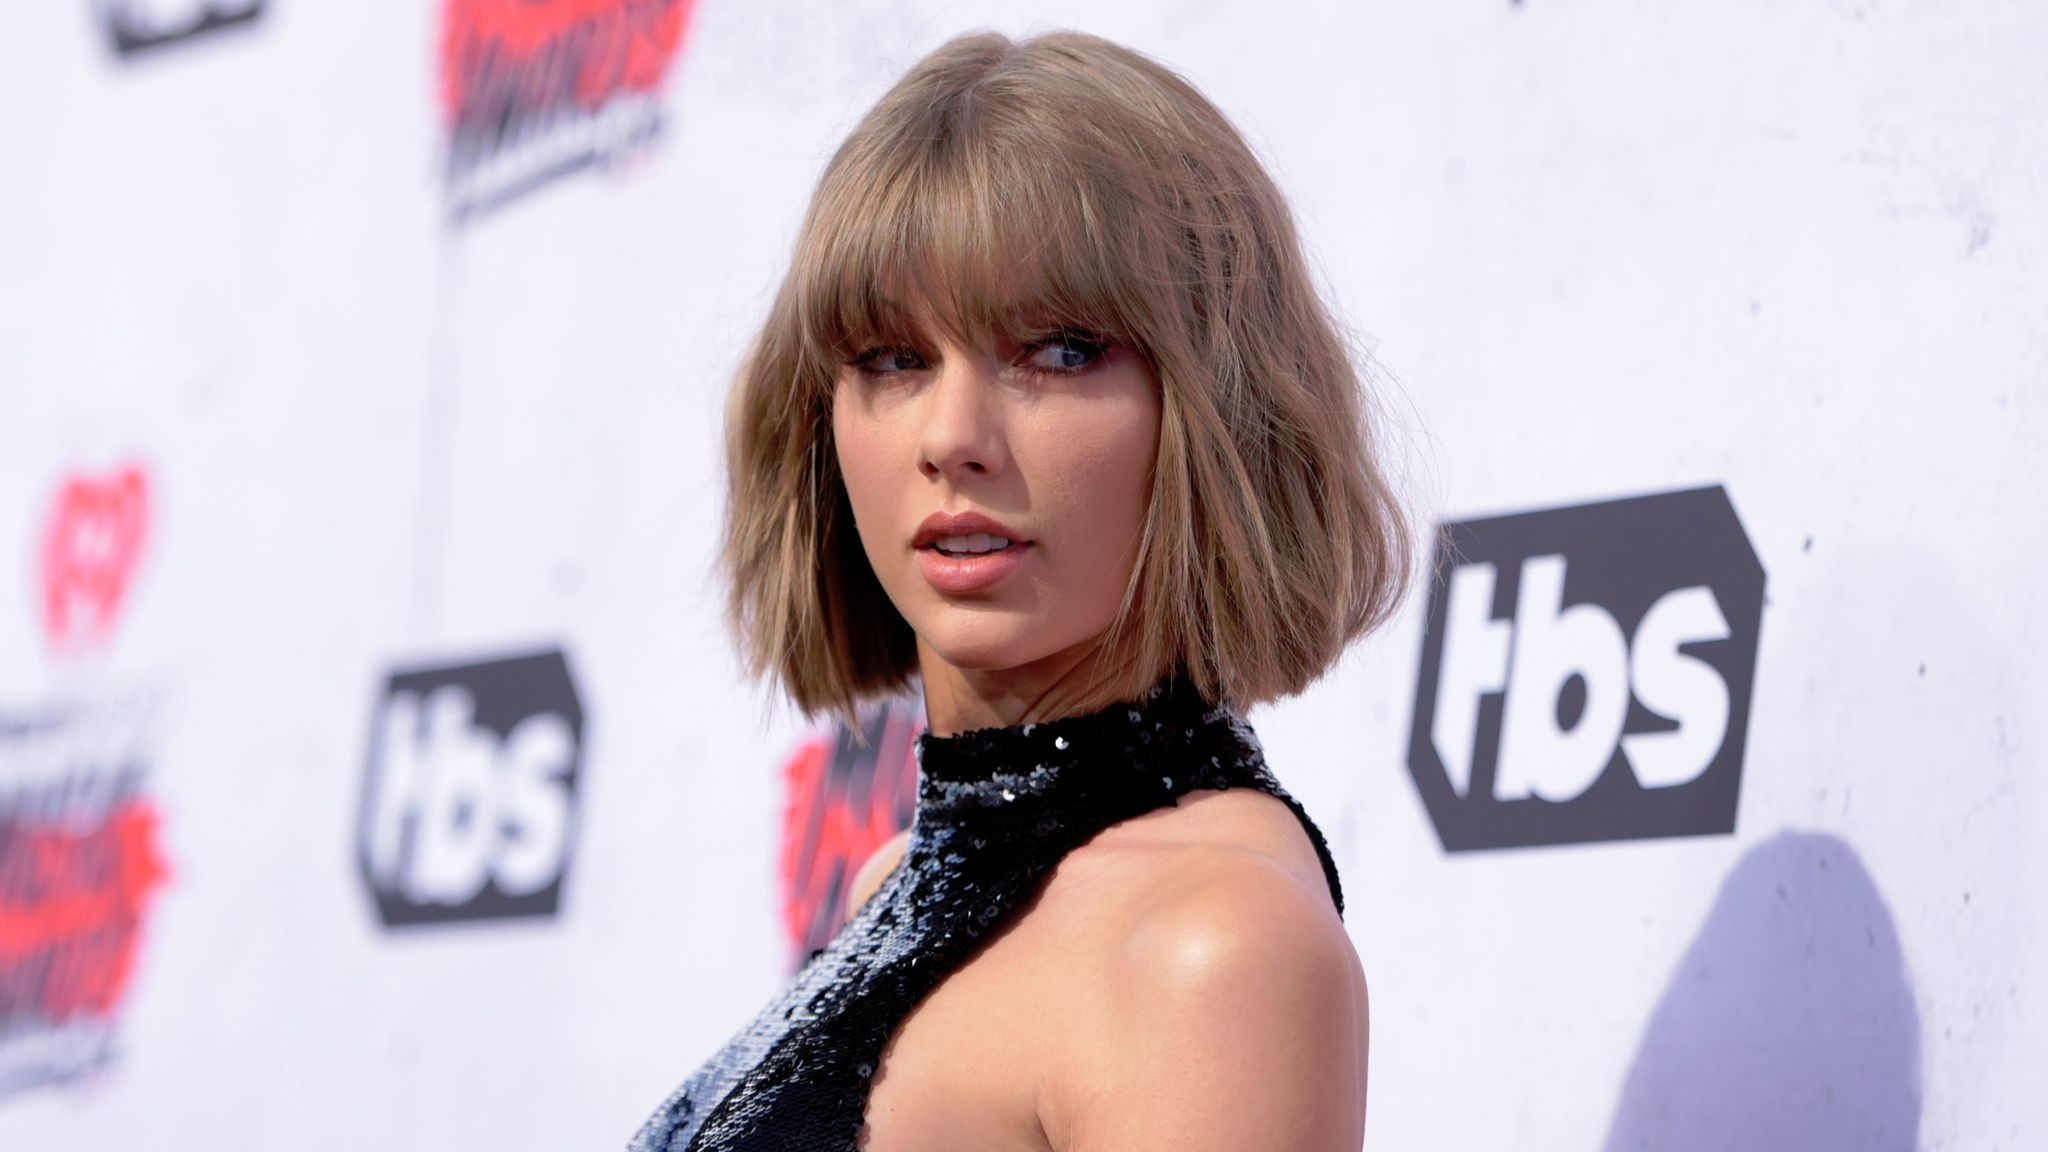 David Mueller being sued by Taylor Swift over 'groping allegations'